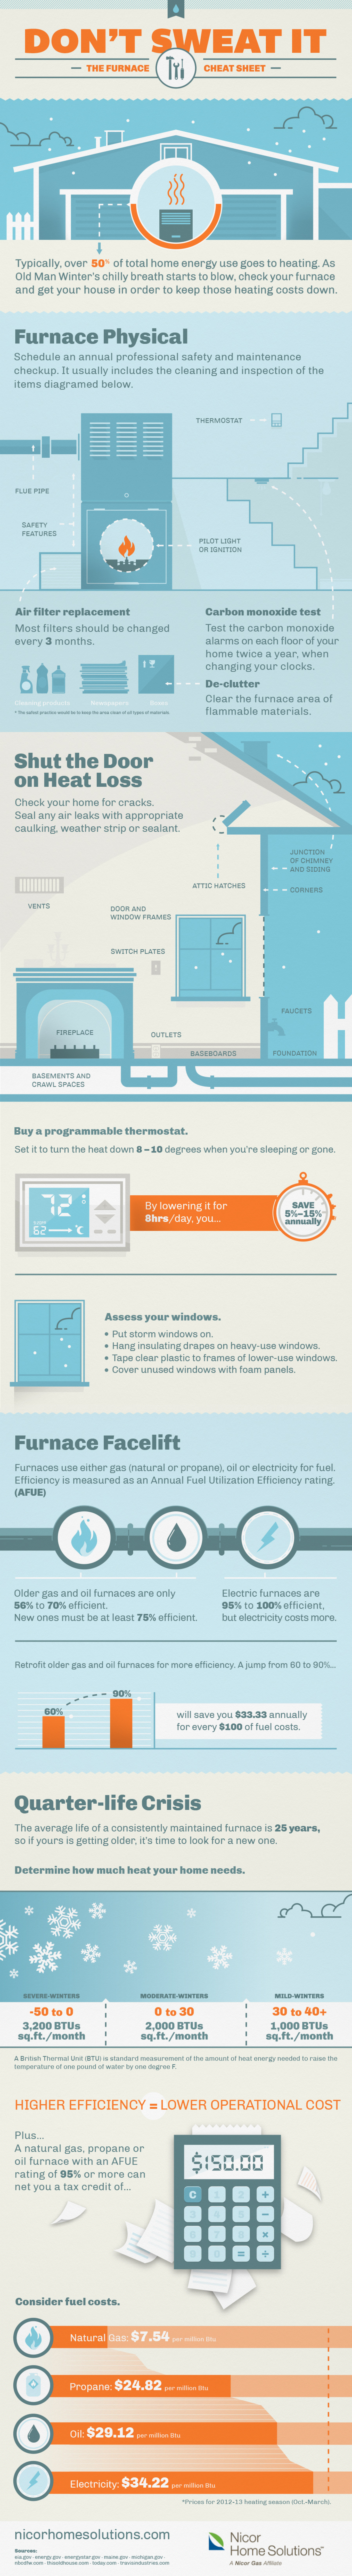 Don't Sweat It: The Furnace Cheat Sheet Infographic